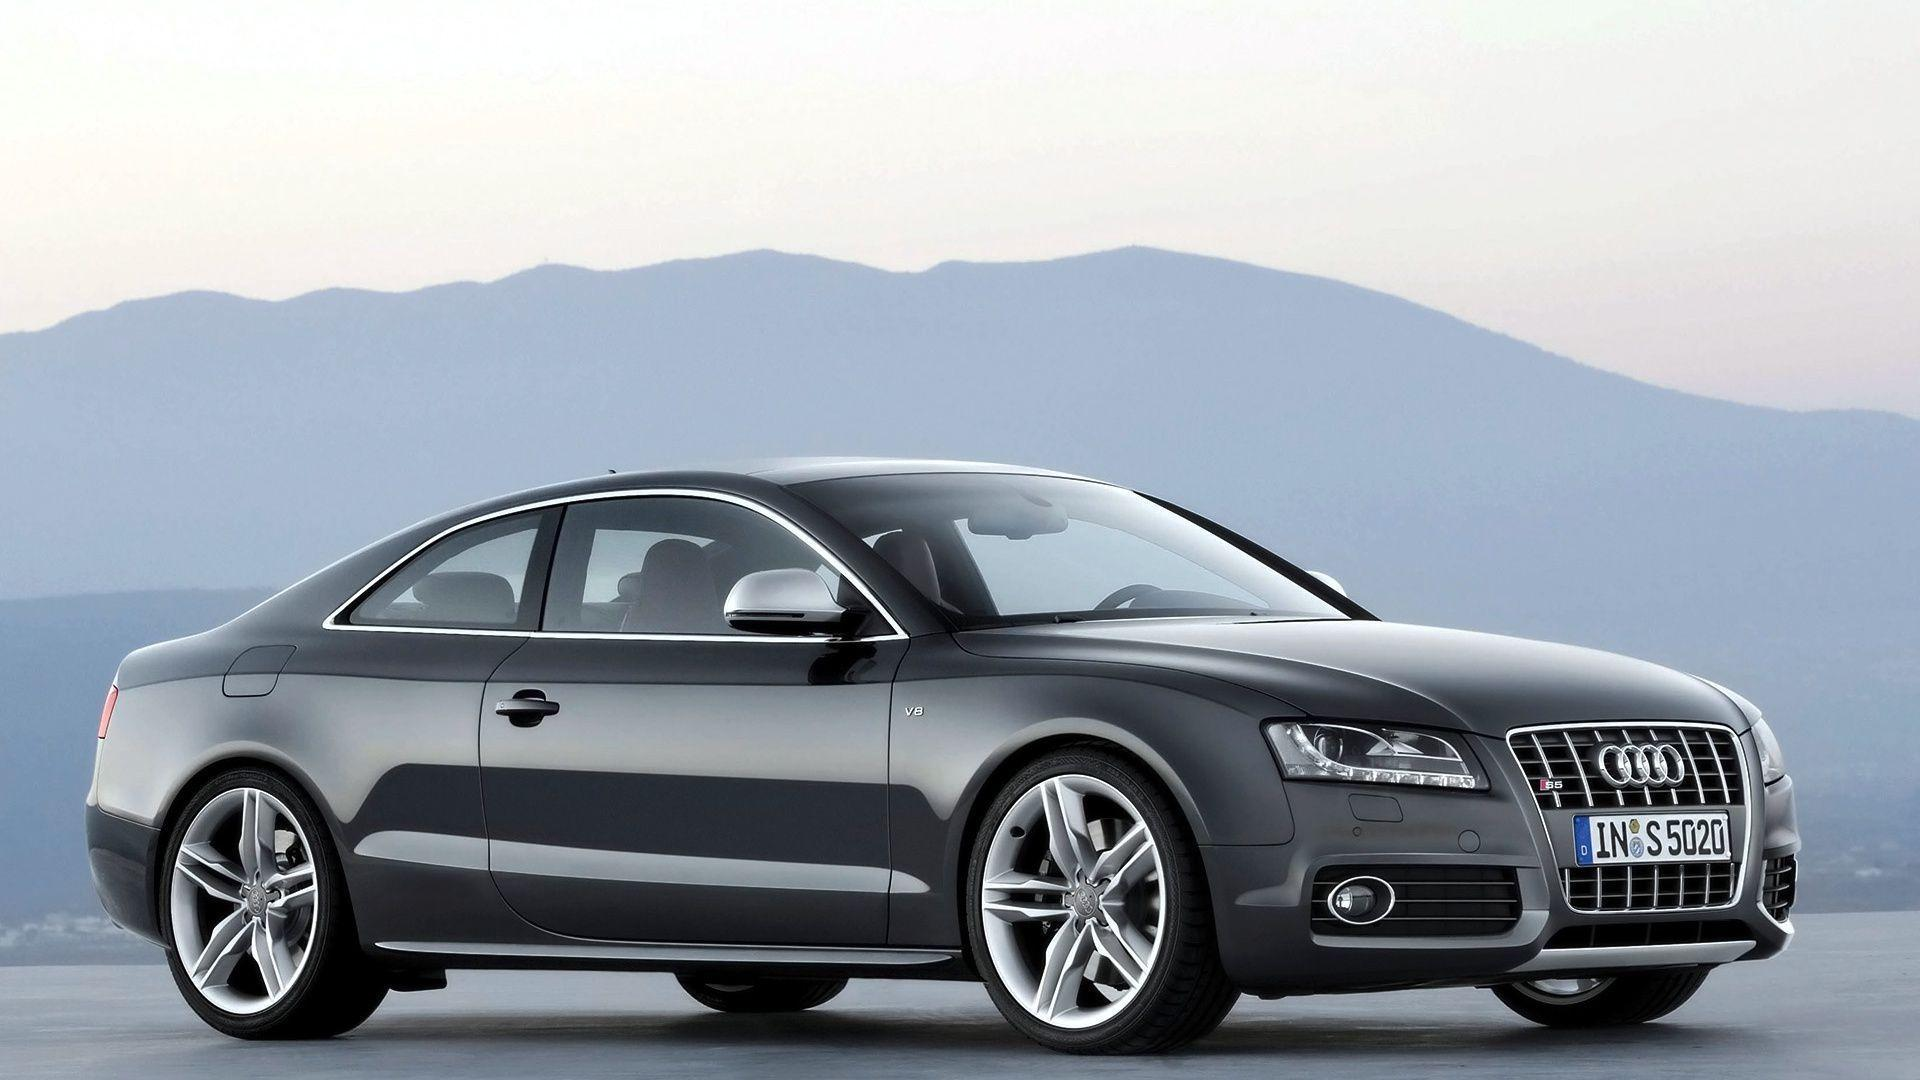 Audi HD Wallpapers backgrounds. All Audi a4 cars wallpapers in hd